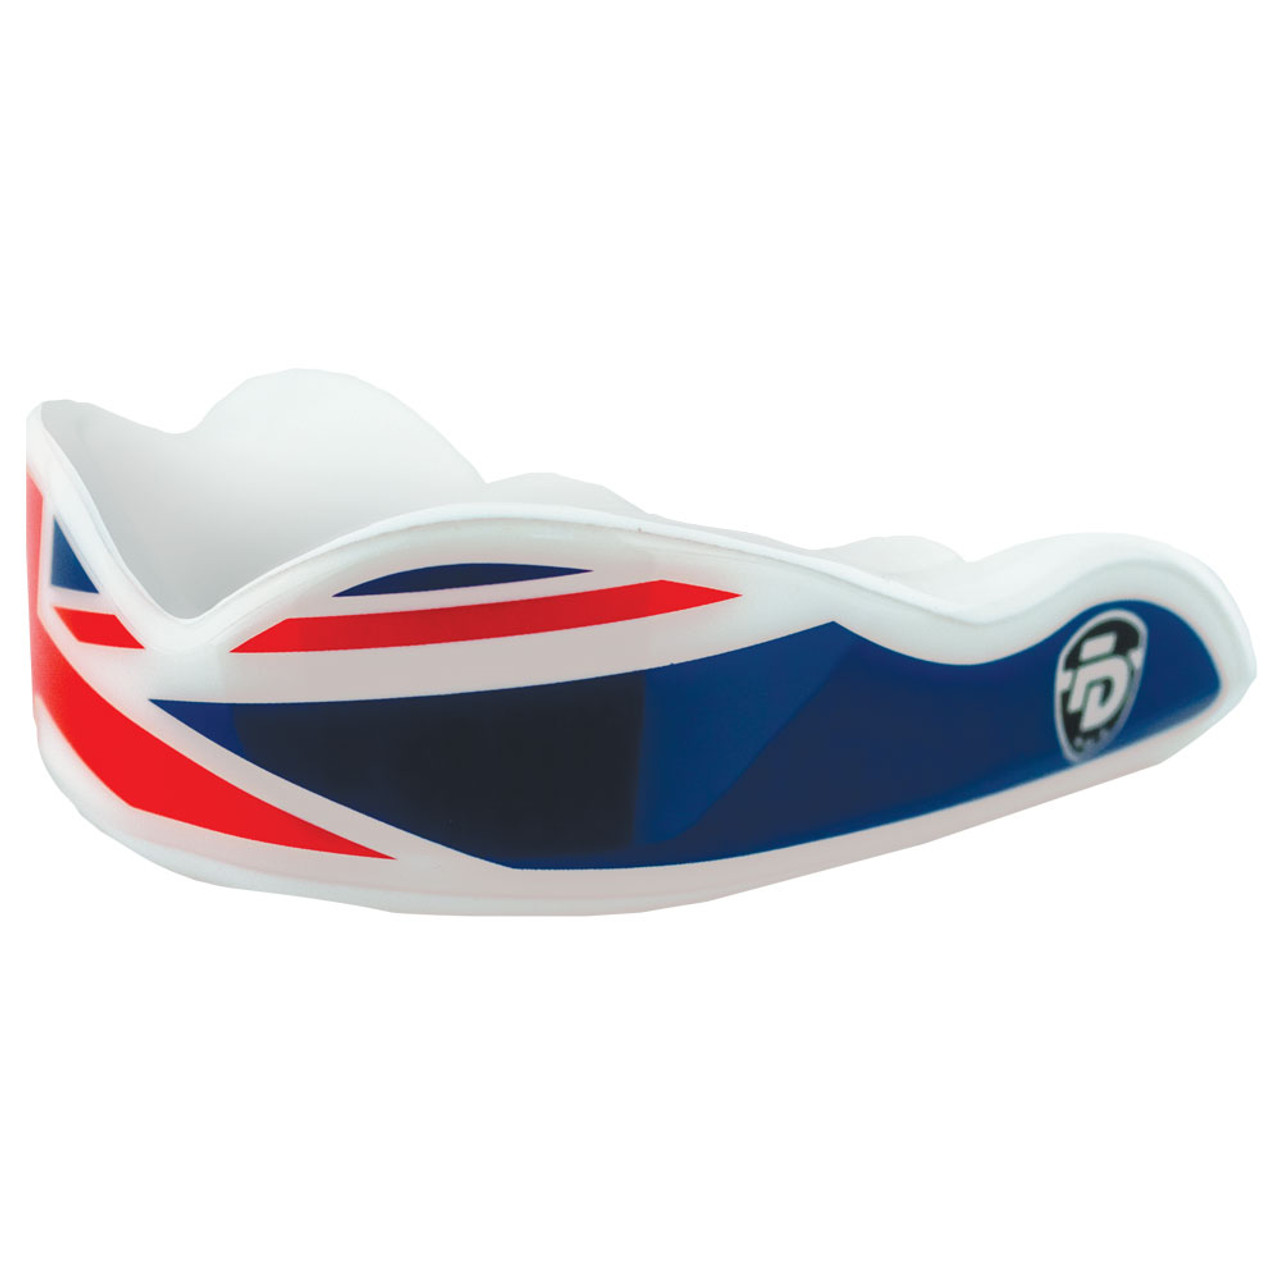 Fightdentist Boil & Bite Mouth Guard - Union Jack